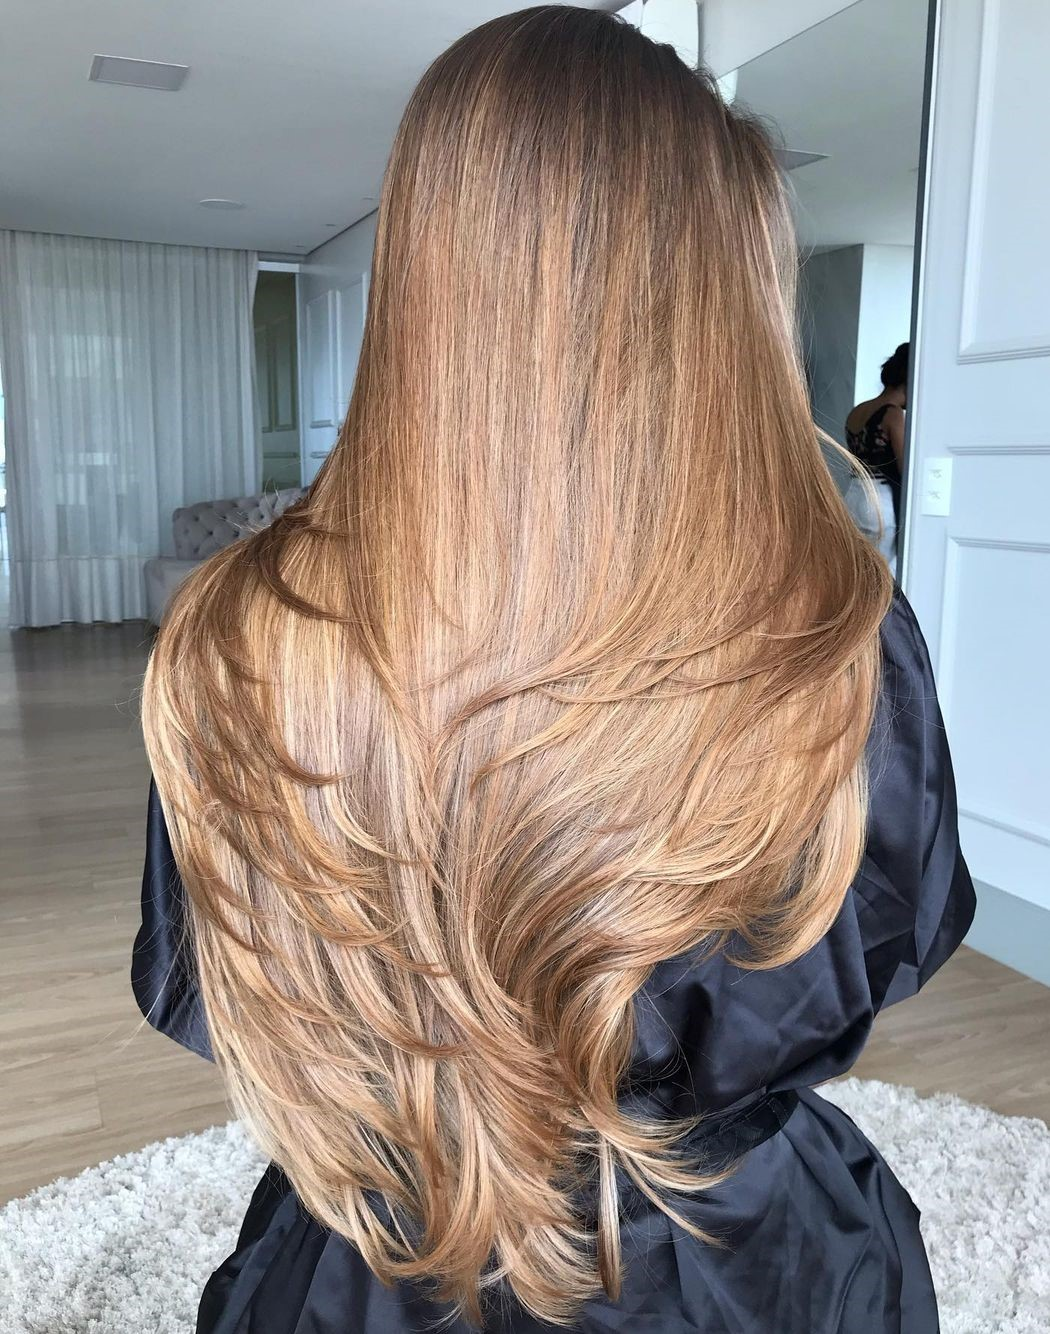 Long Hair with Layers Flow